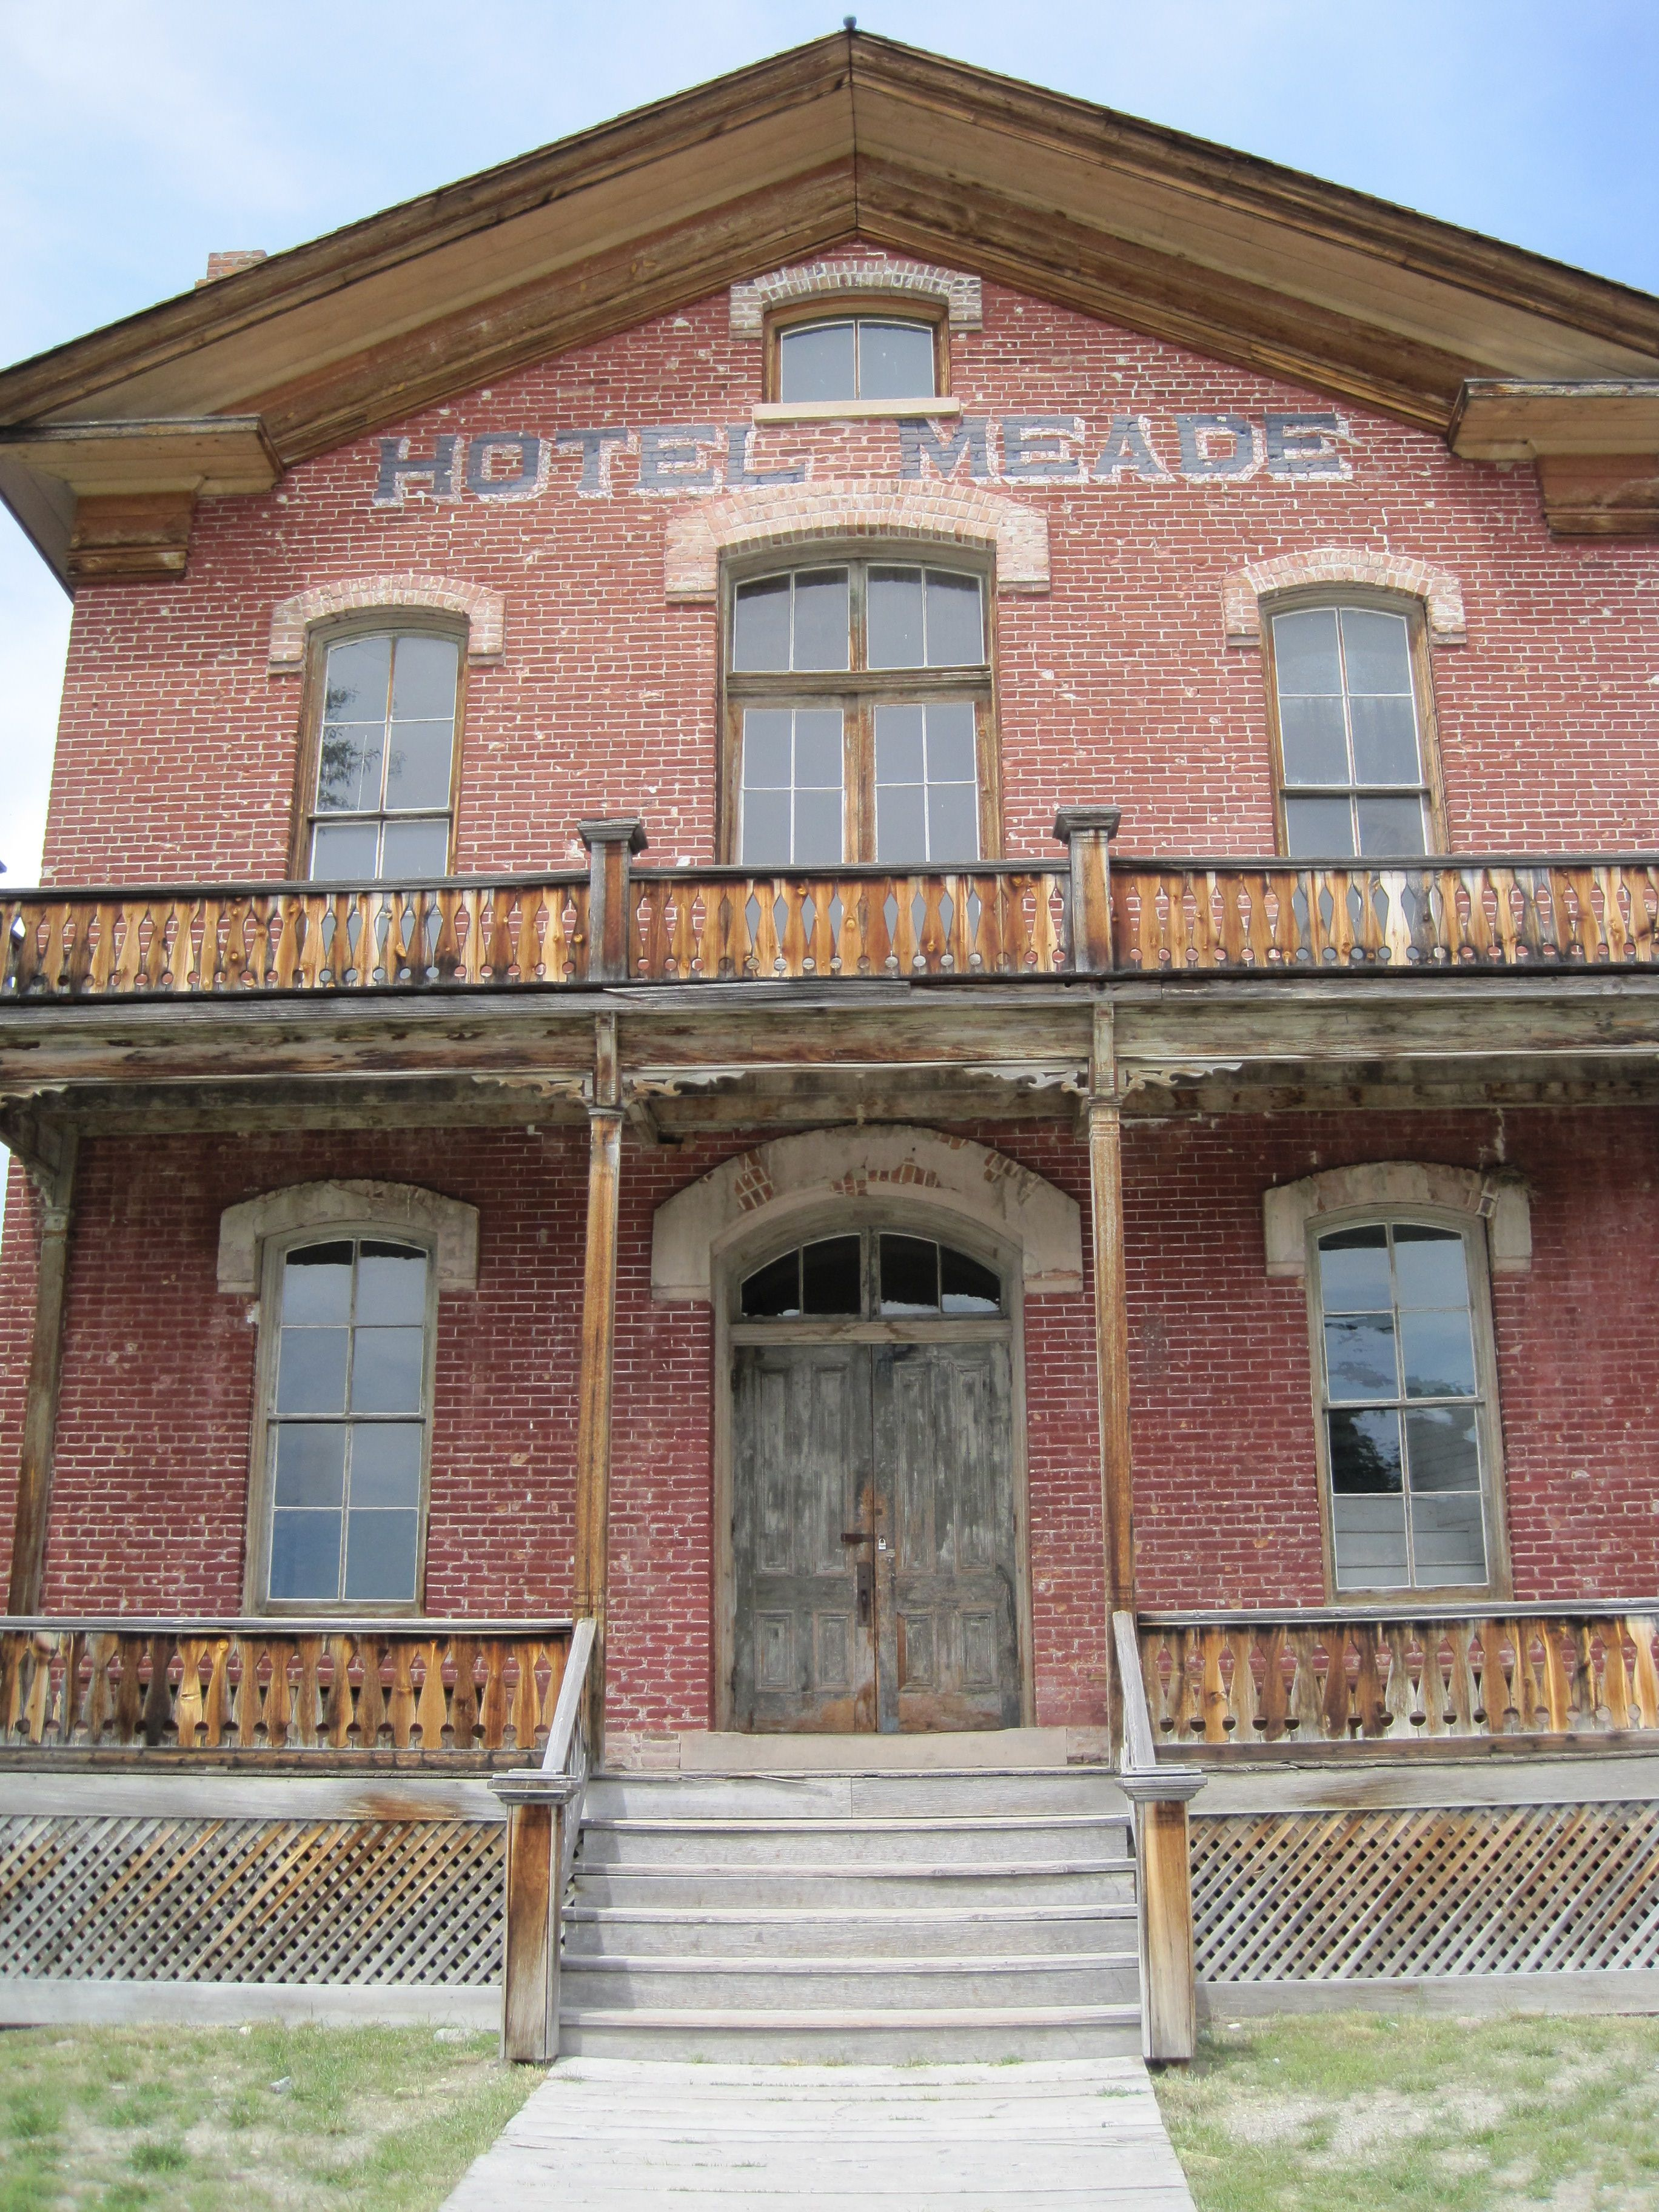 Hotel Meade in Bannack Ghost Town  Bannack State Park  Montana